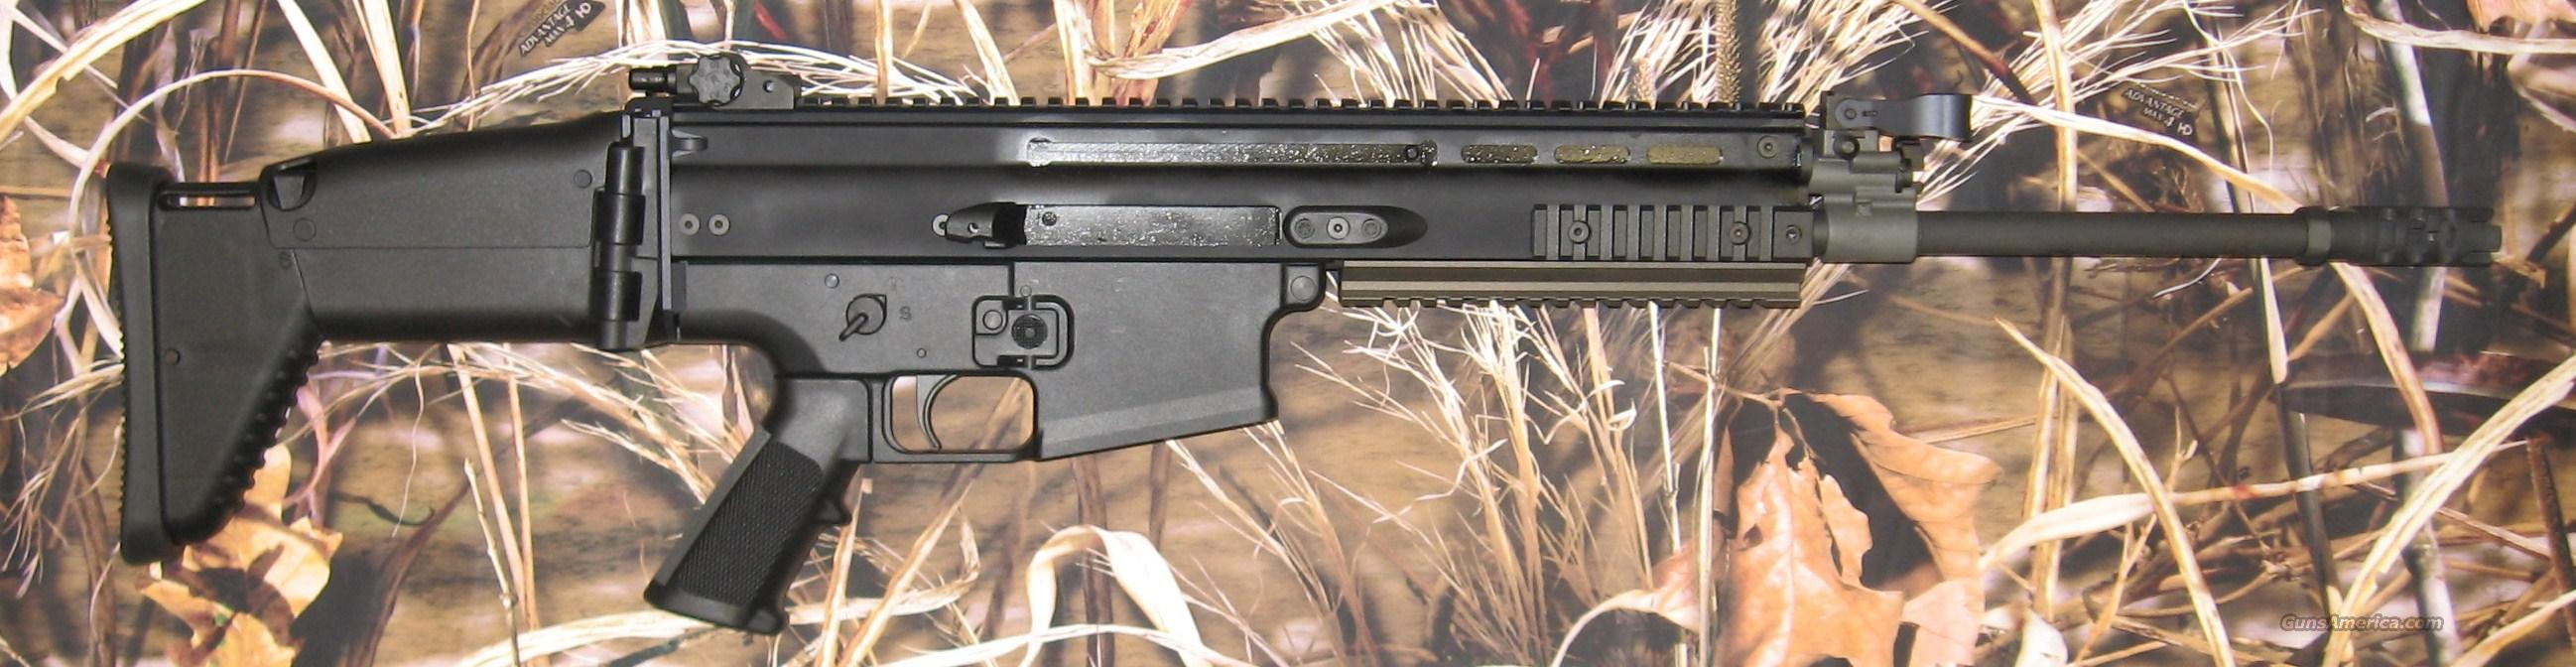 FNH Scar 17S .308 Black   Guns > Rifles > FNH - Fabrique Nationale (FN) Rifles > Semi-auto > Other